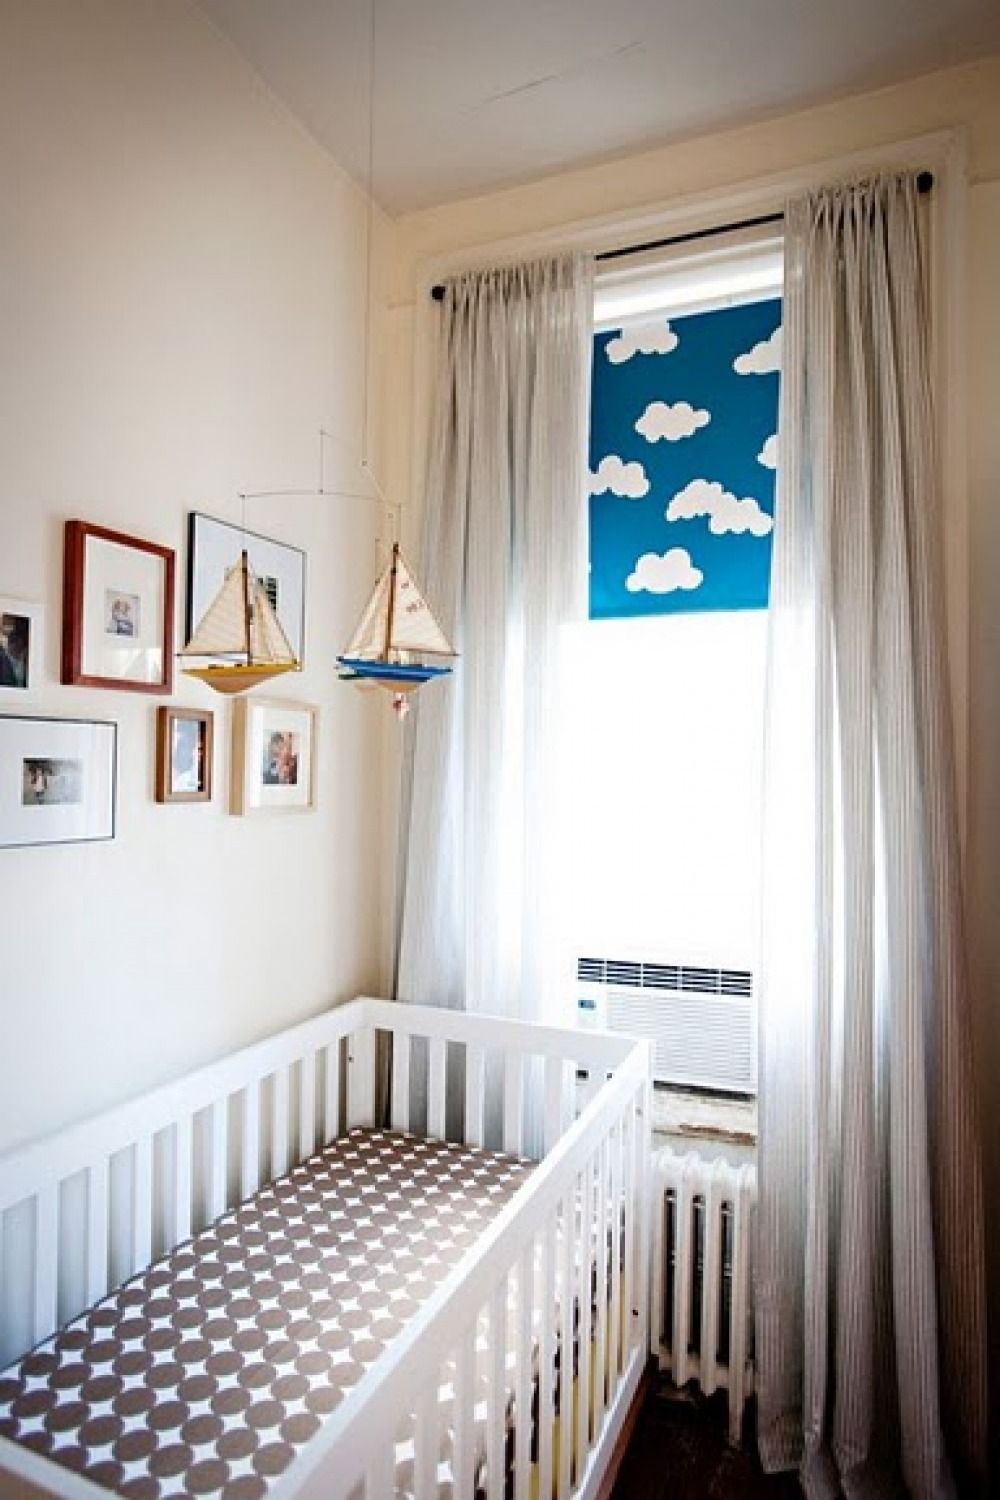 High Quality Great Idea For Nursery: Blackout Shades With Floor Length U0027sheerishu0027  Curtains. Blackout Home Design Ideas